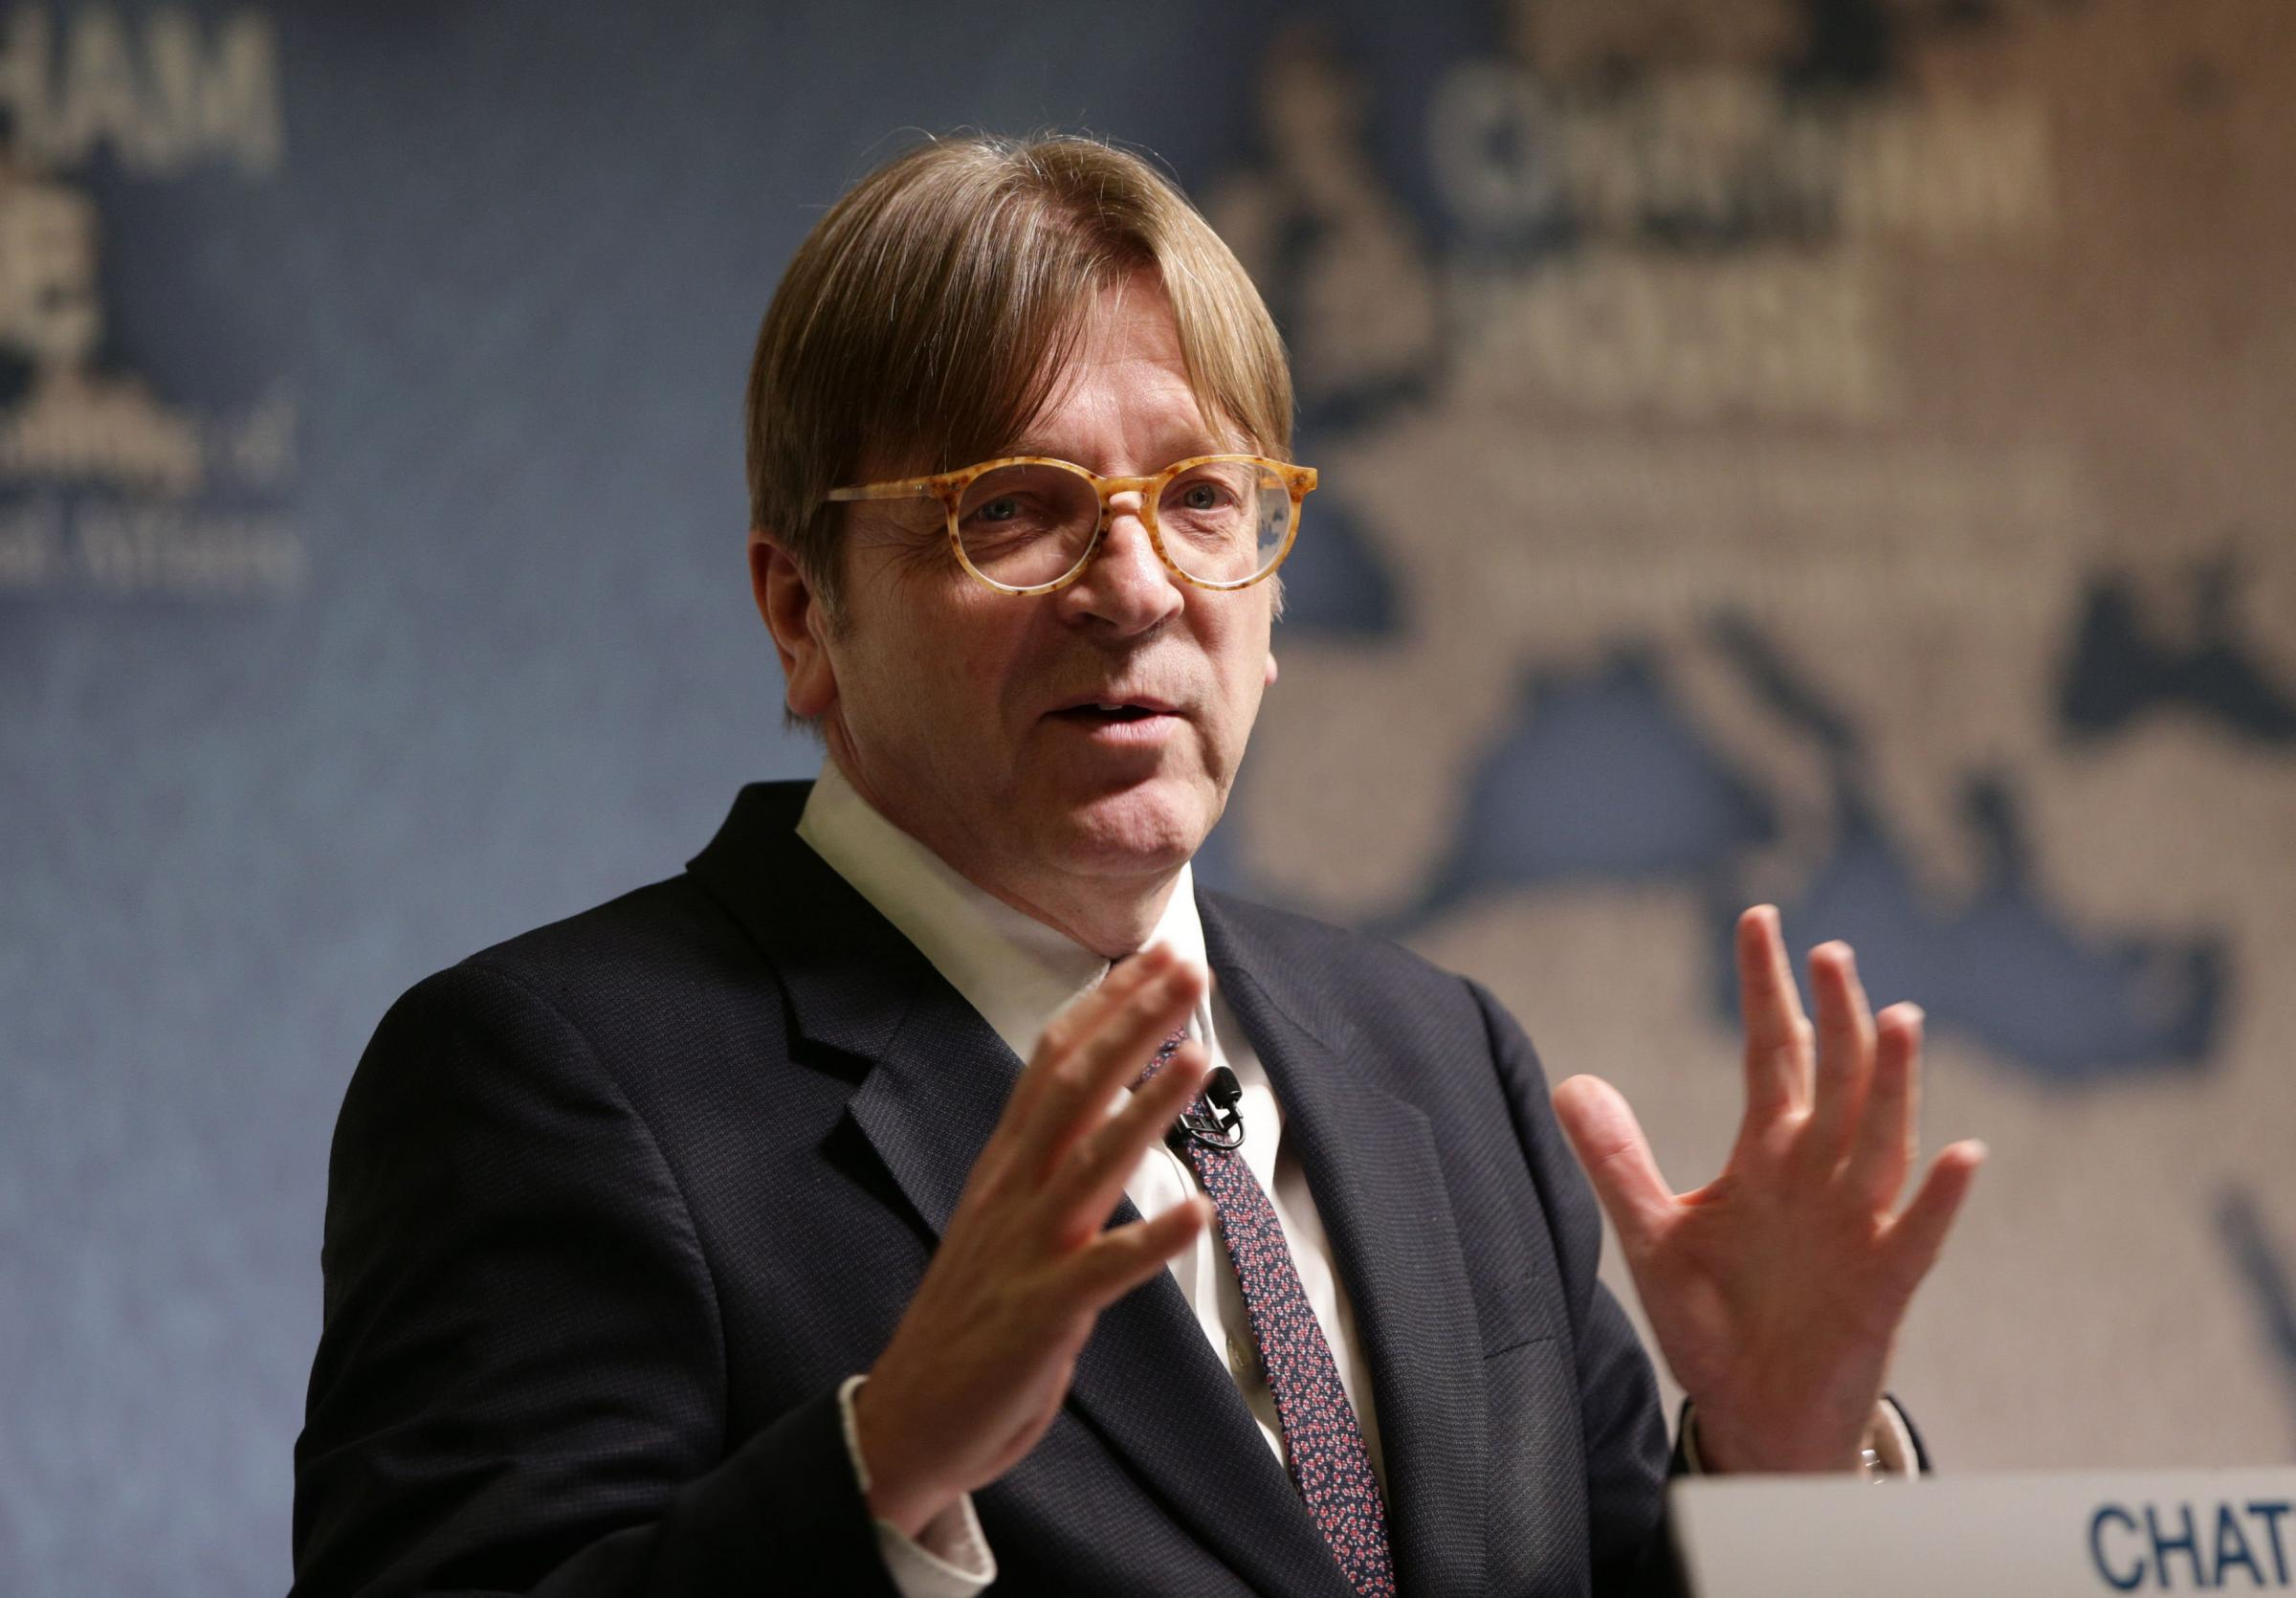 Guy Verhofstadt says Europe hasn't forgotten Scotland voted Remain